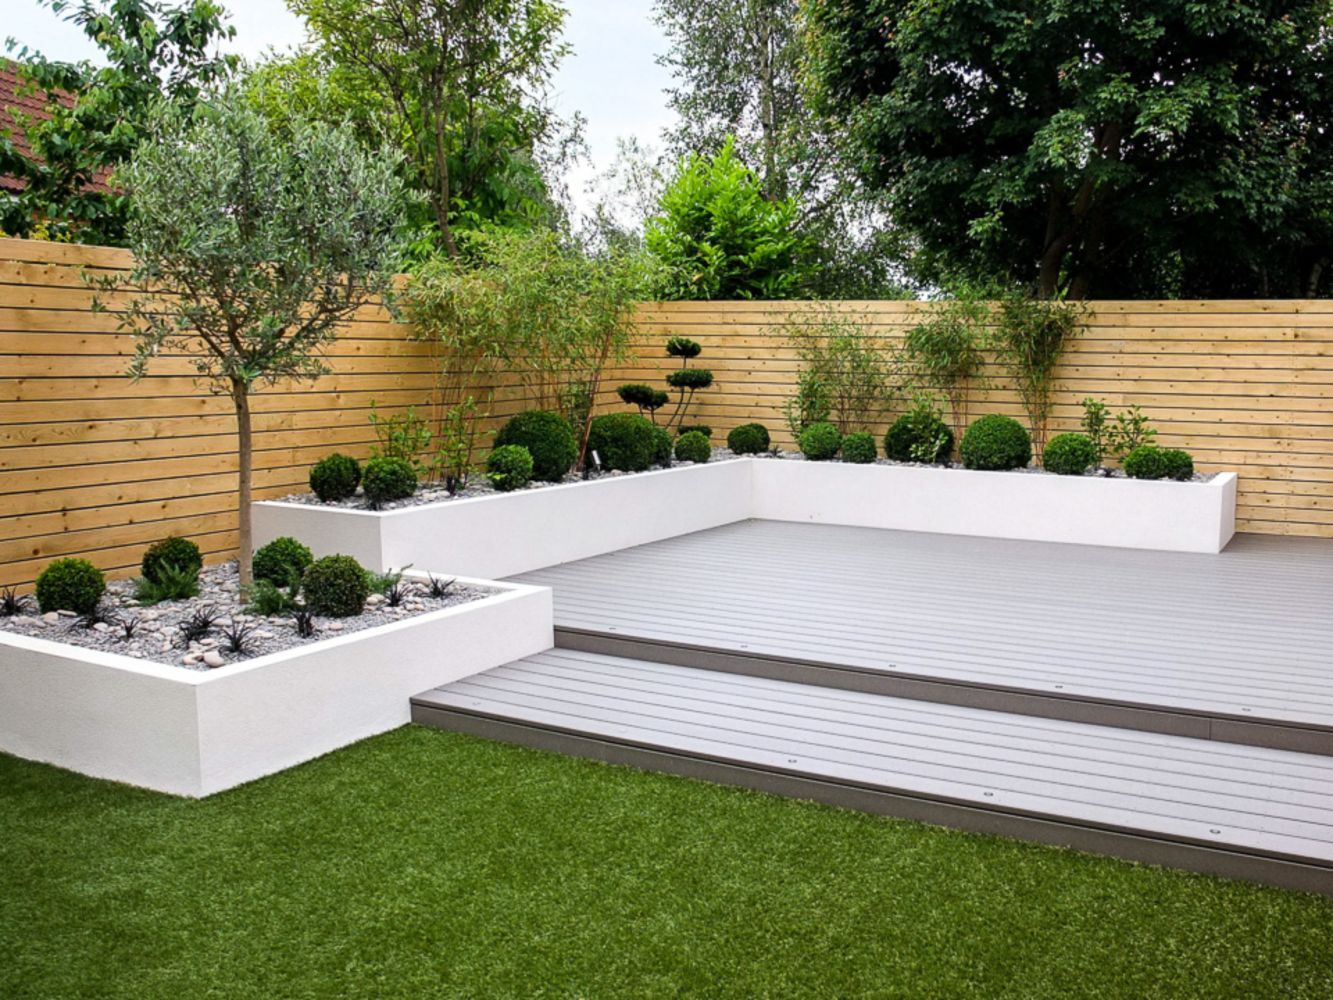 Cool 60 Low Maintenance Modern Minimalist Garden Design  Https://wartaku.net/2017/06/21/60 Low Maintenance Modern Minimalist Garden  Design/